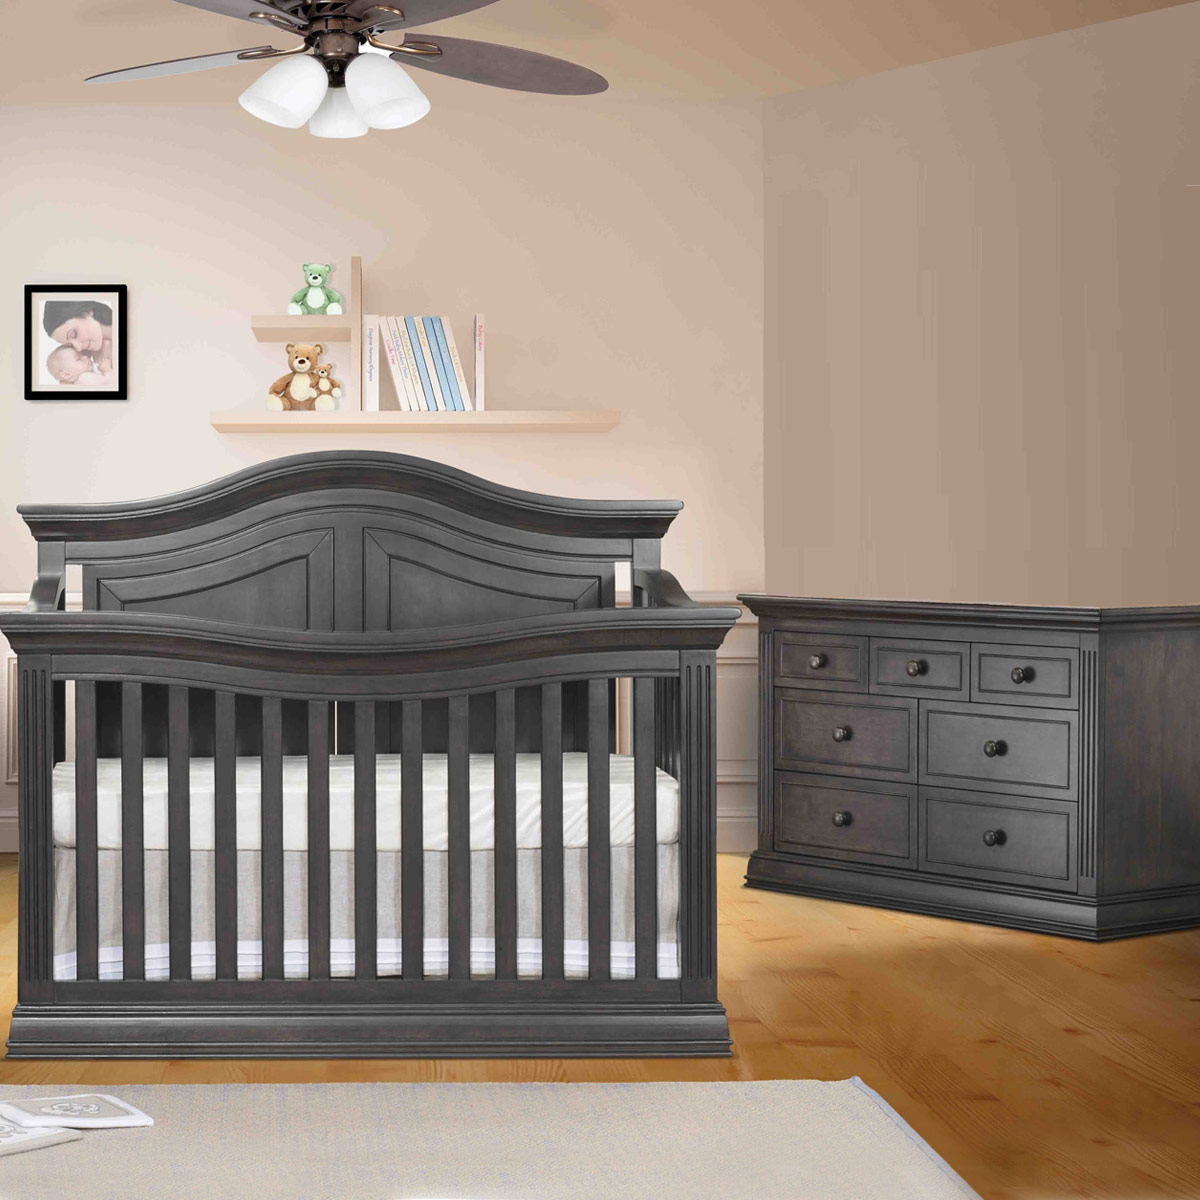 Sorelle Providence 2 Piece Nursery Set 4 In 1 Convertible Crib And Double Dresser In Vintage Gray Free Shipping